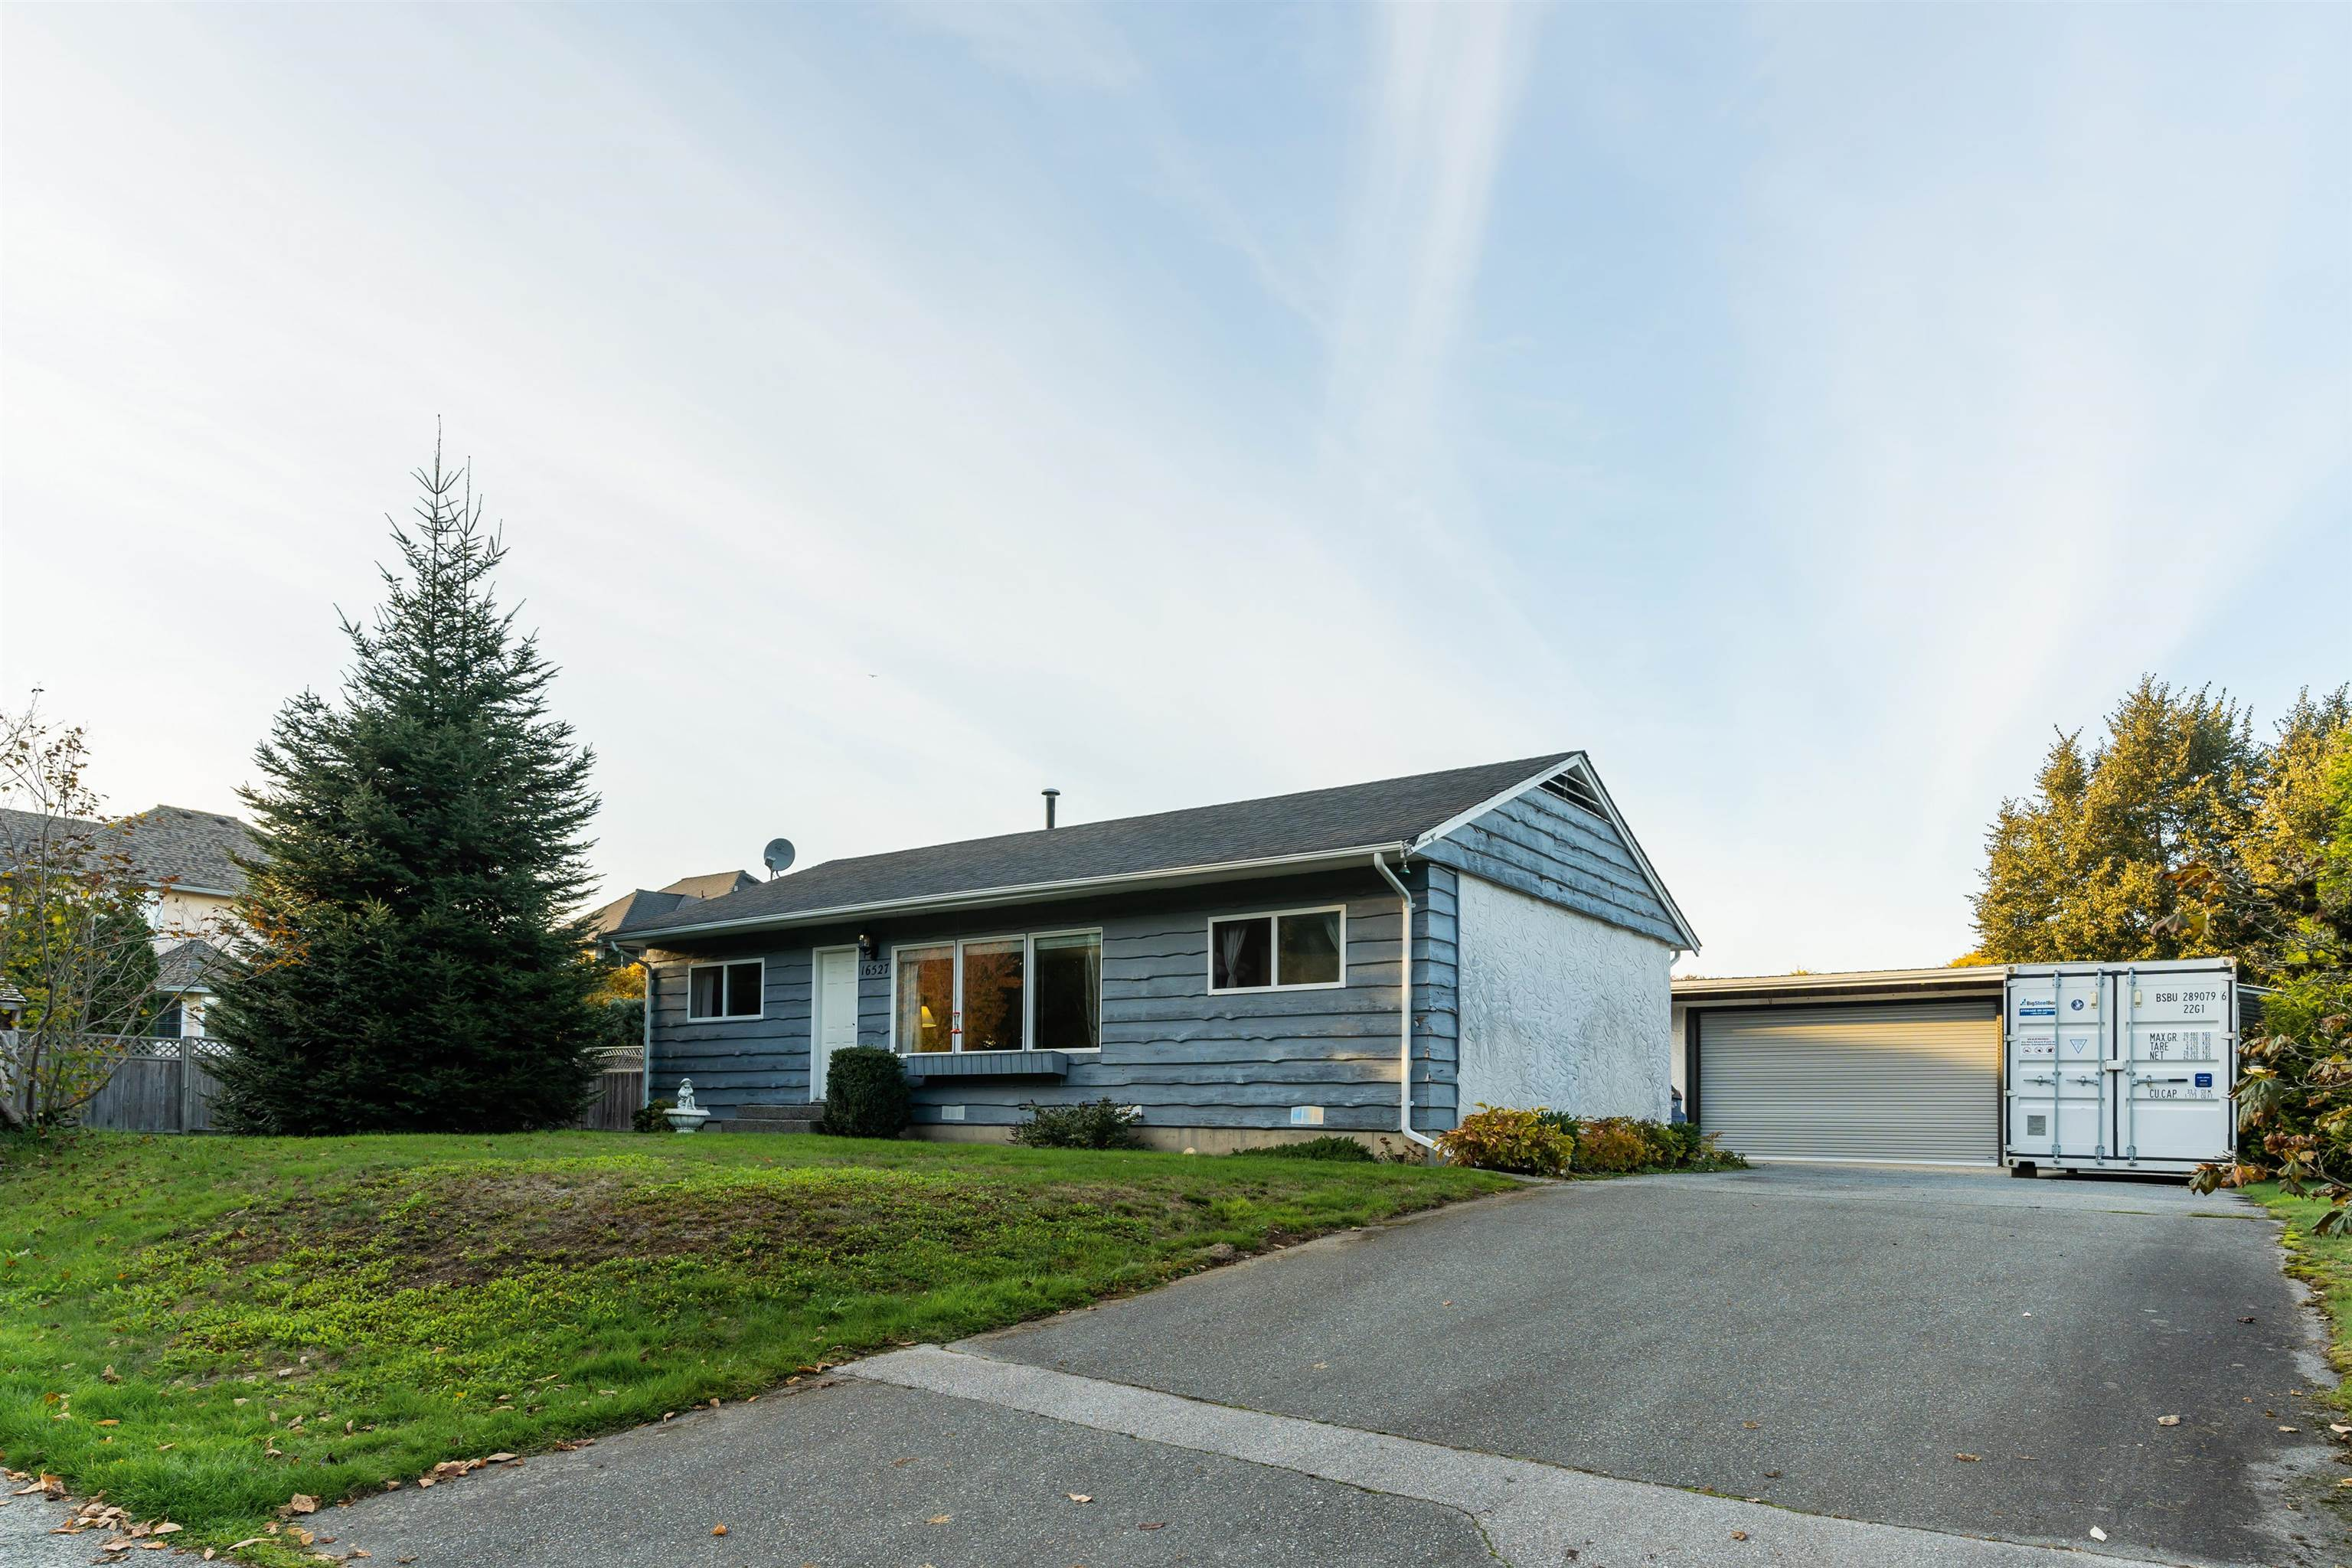 16527 84 AVENUE - Fleetwood Tynehead House/Single Family for sale, 2 Bedrooms (R2625496) - #2